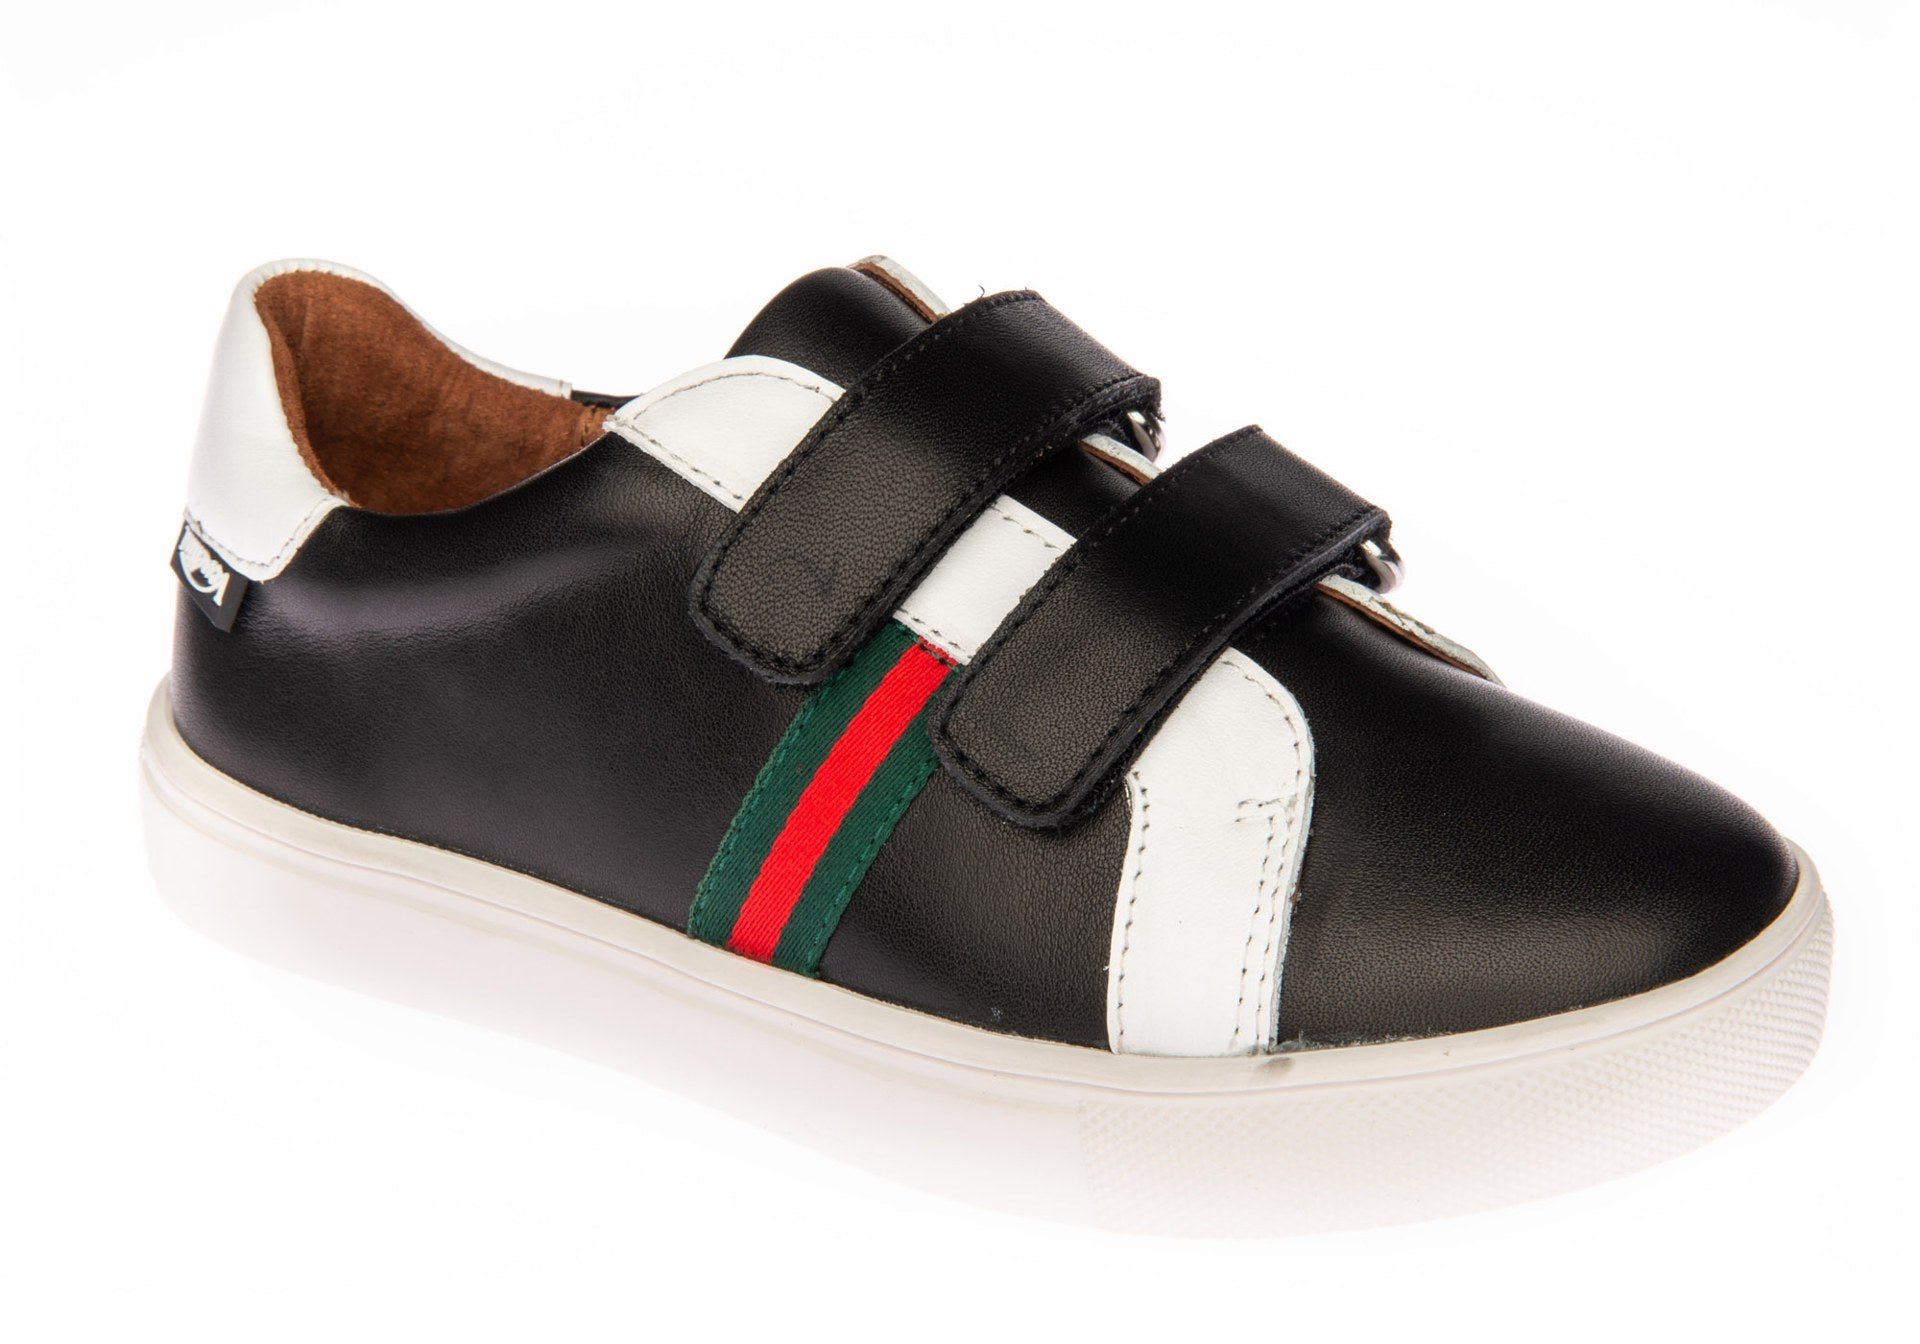 Venettini Black Double Velcro Sneaker with White Trim